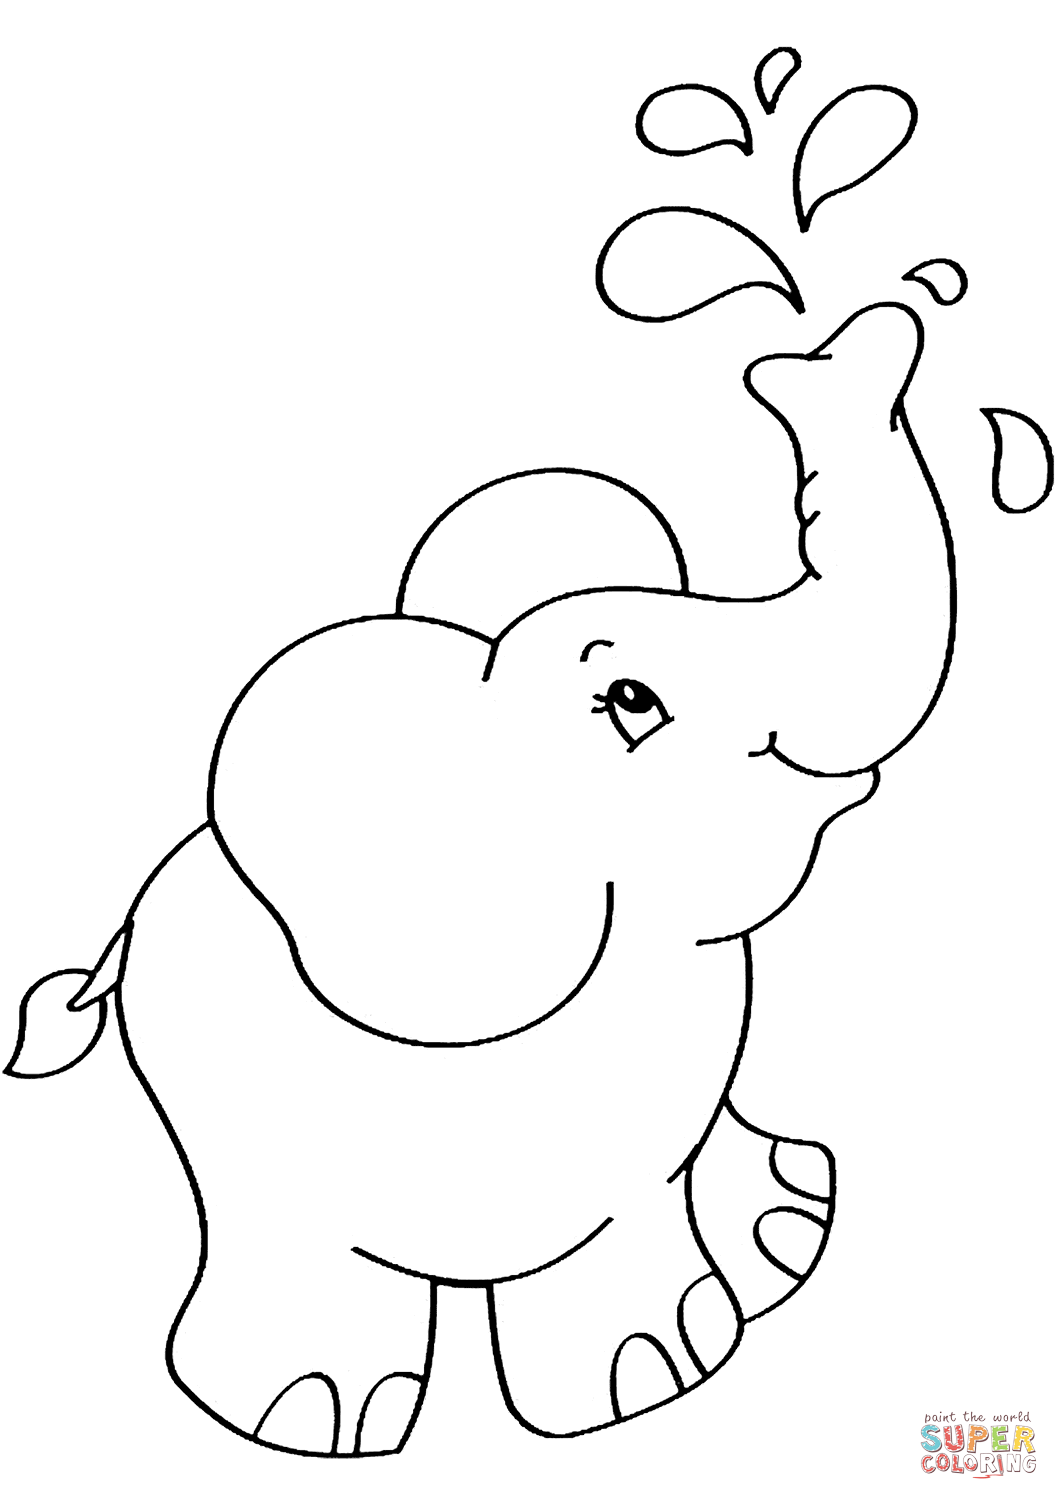 simple baby elephant coloring pages cute little elephant bathing elephant coloring page baby coloring simple elephant pages